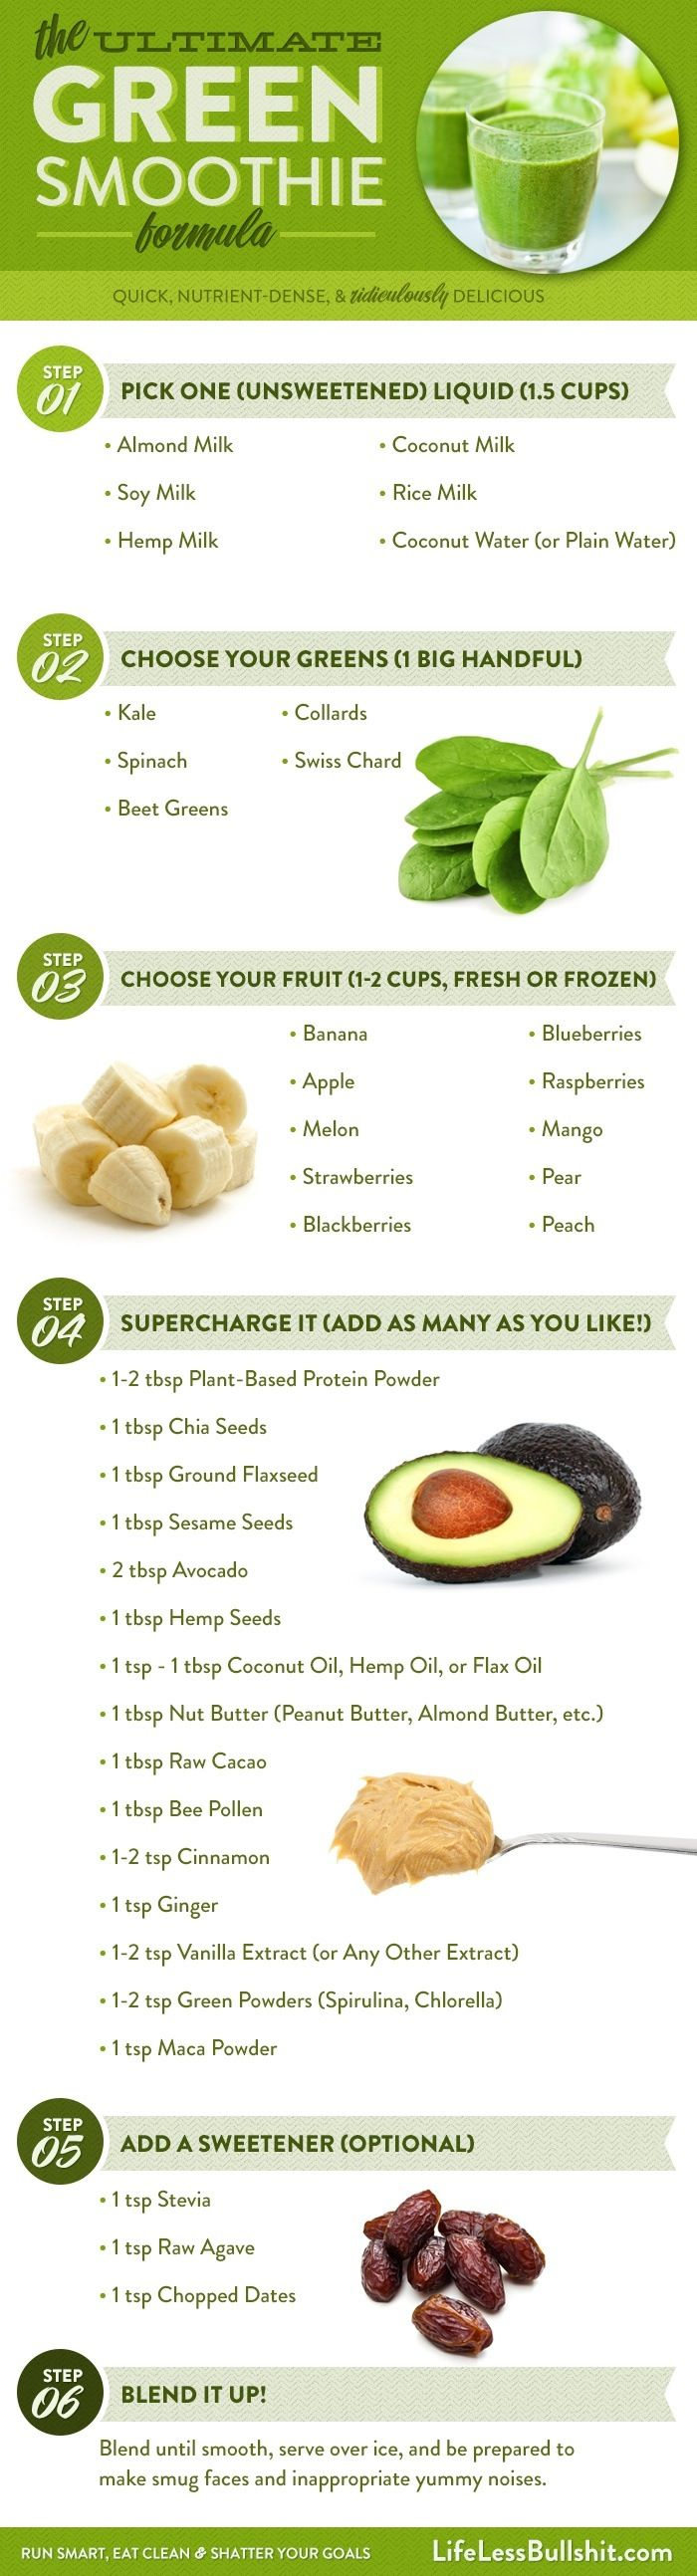 The Ultimate Green Smoothie Formula....... Quick, nutrient-dense and ridiculously delicious